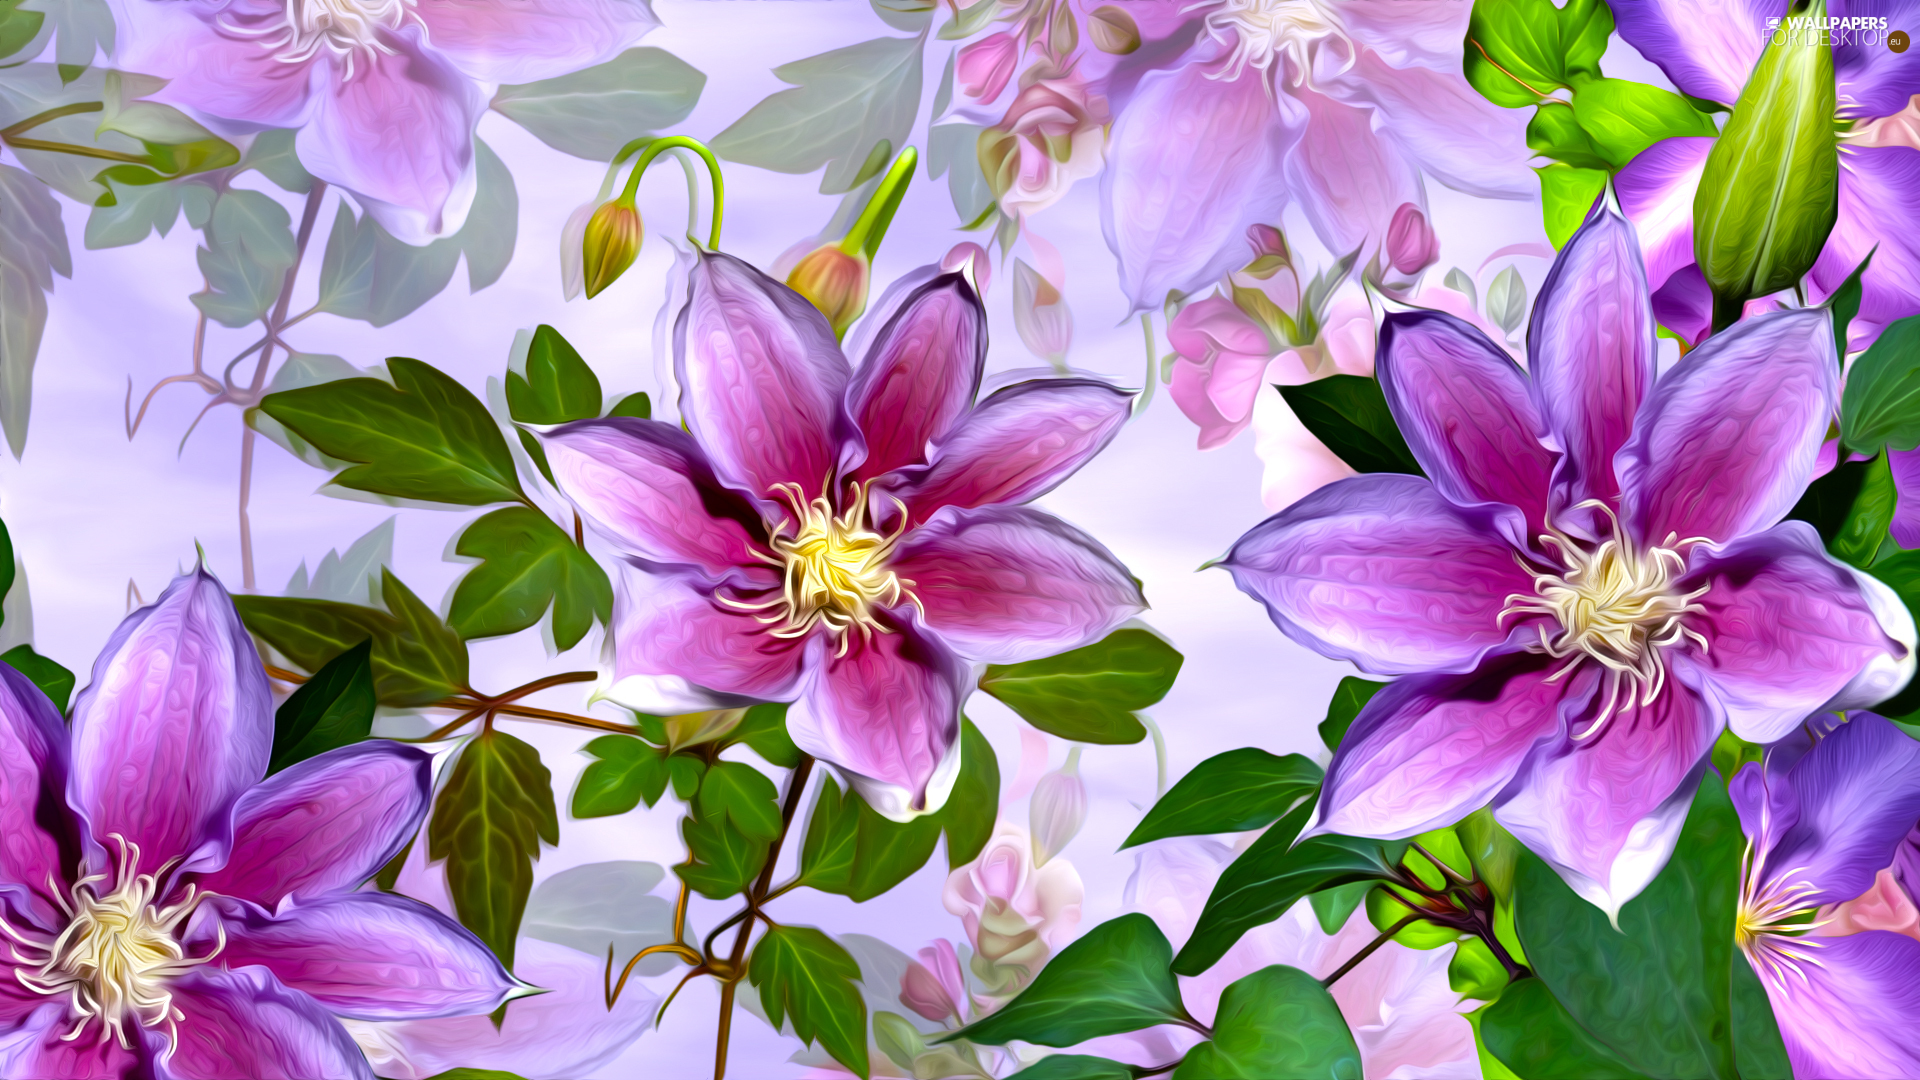 graphics, Flowers, Clematis